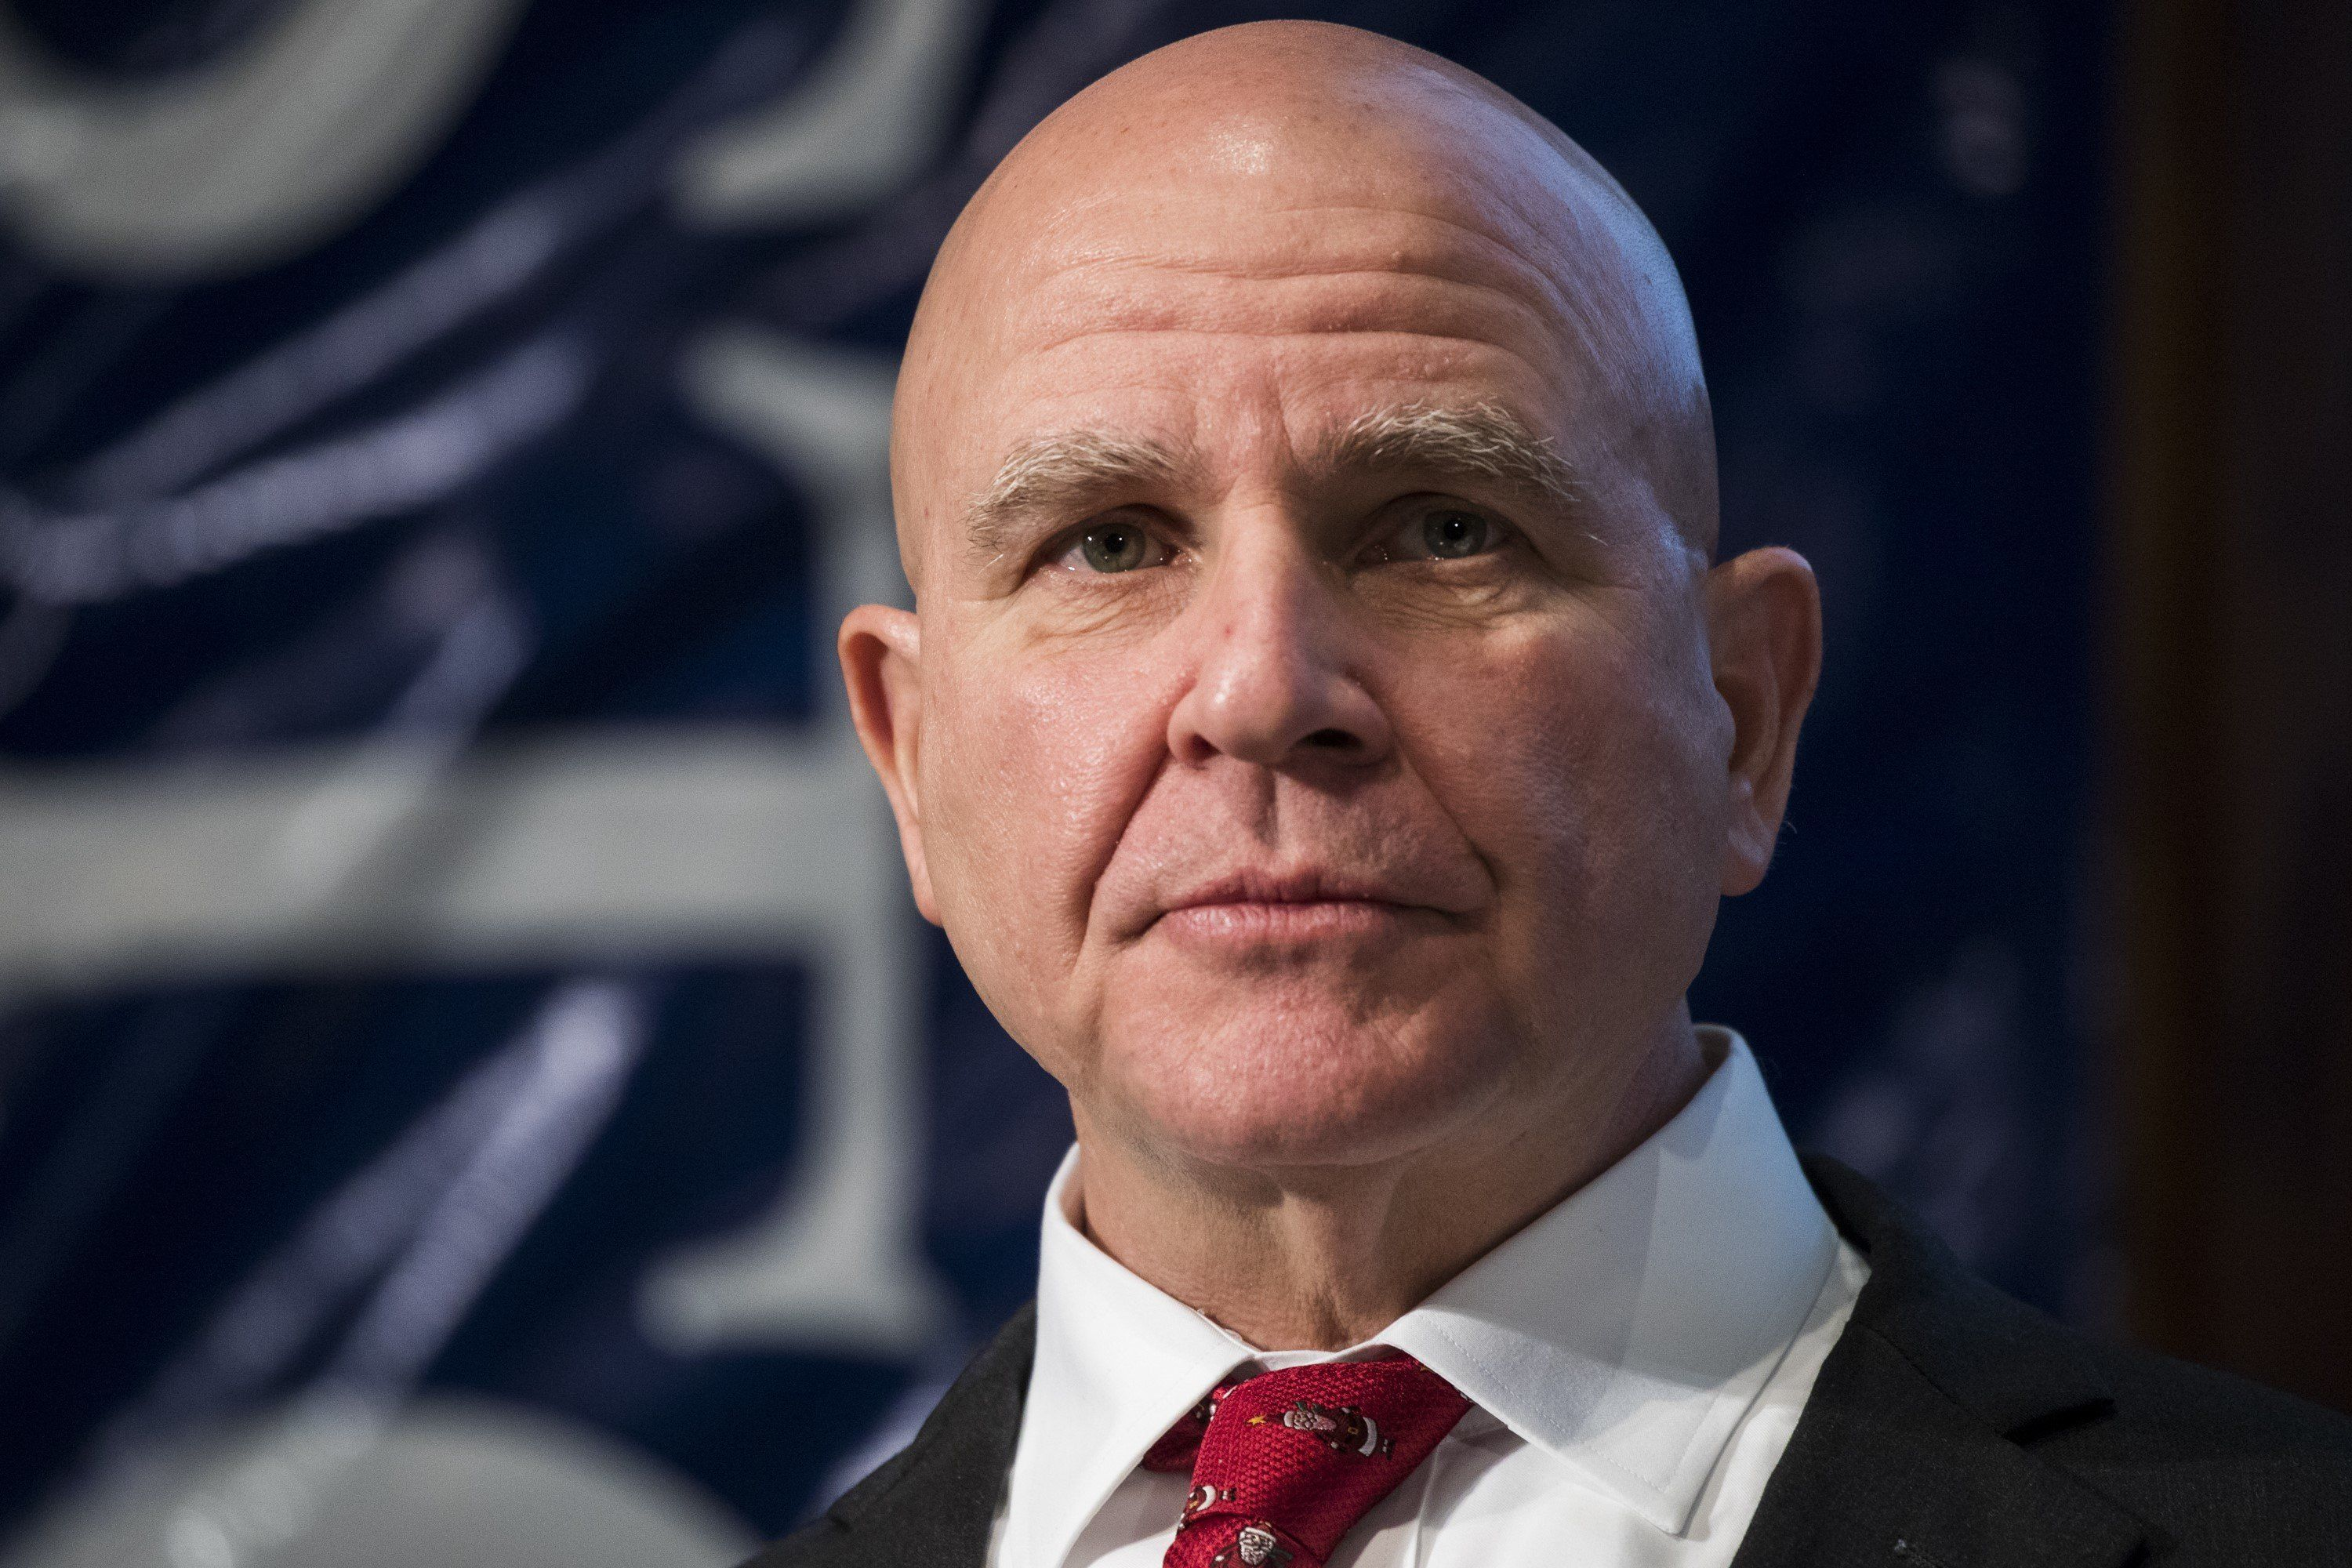 WASHINGTON, USA - DECEMBER 13: Lt. Gen. Herbert Raymond McMaster, National Security Advisor to President Trump, speaks at the Jamestown Foundation's 11th annual Terrorism Conference at the National Press Club in Washington, United States on December 13, 2017. (Photo by Samuel Corum/Anadolu Agency/Getty Images)